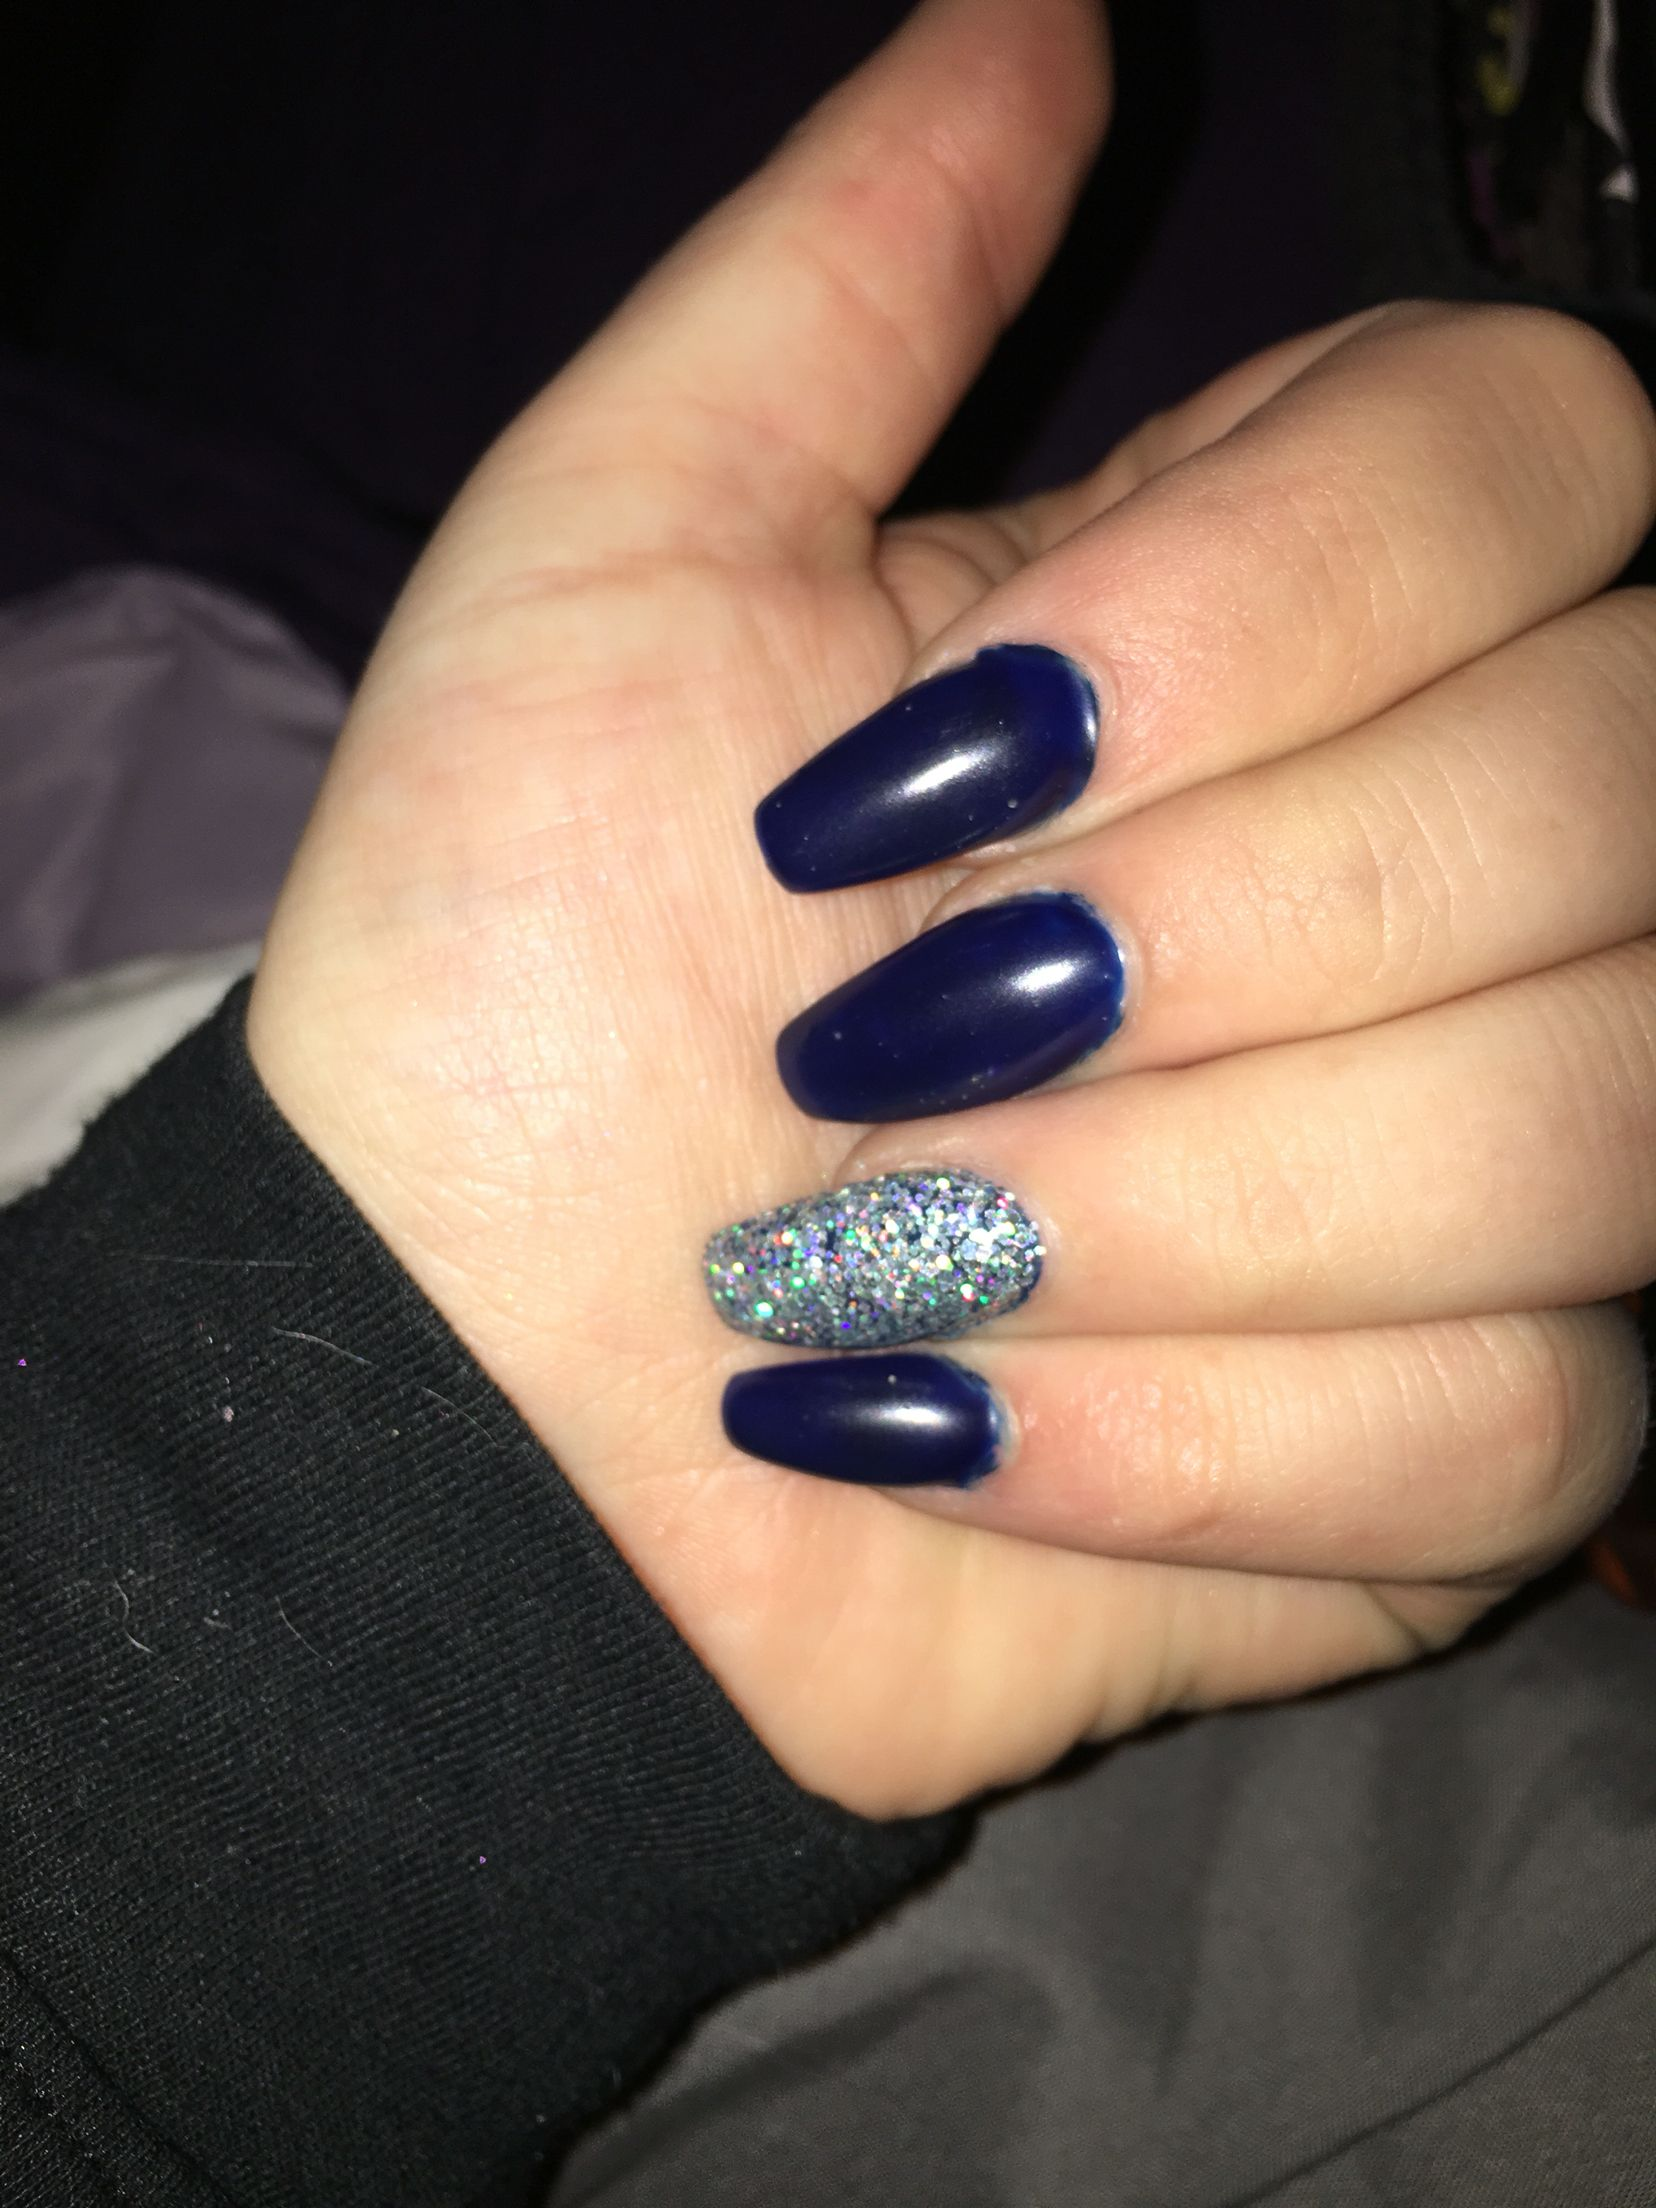 Navy blue and silver coffin shaped nails for prom | Nails ...